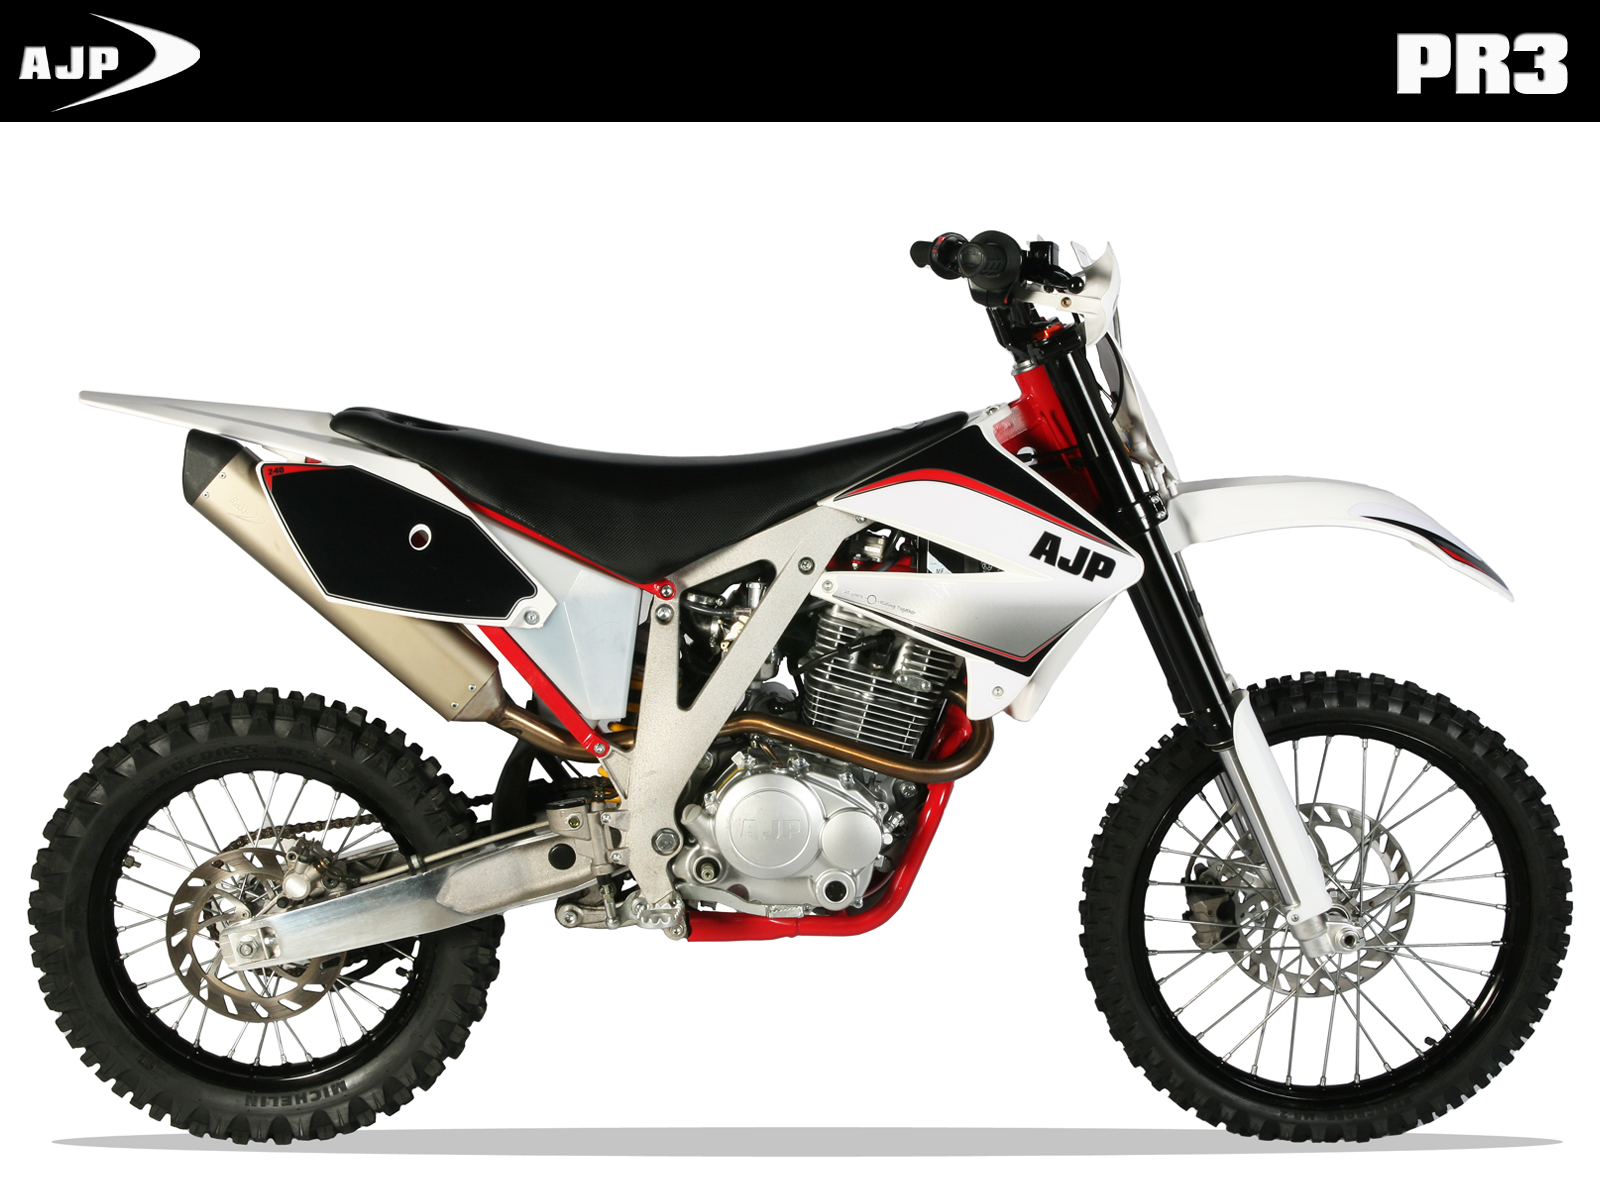 AJP PR4 200 Supermoto images #155854